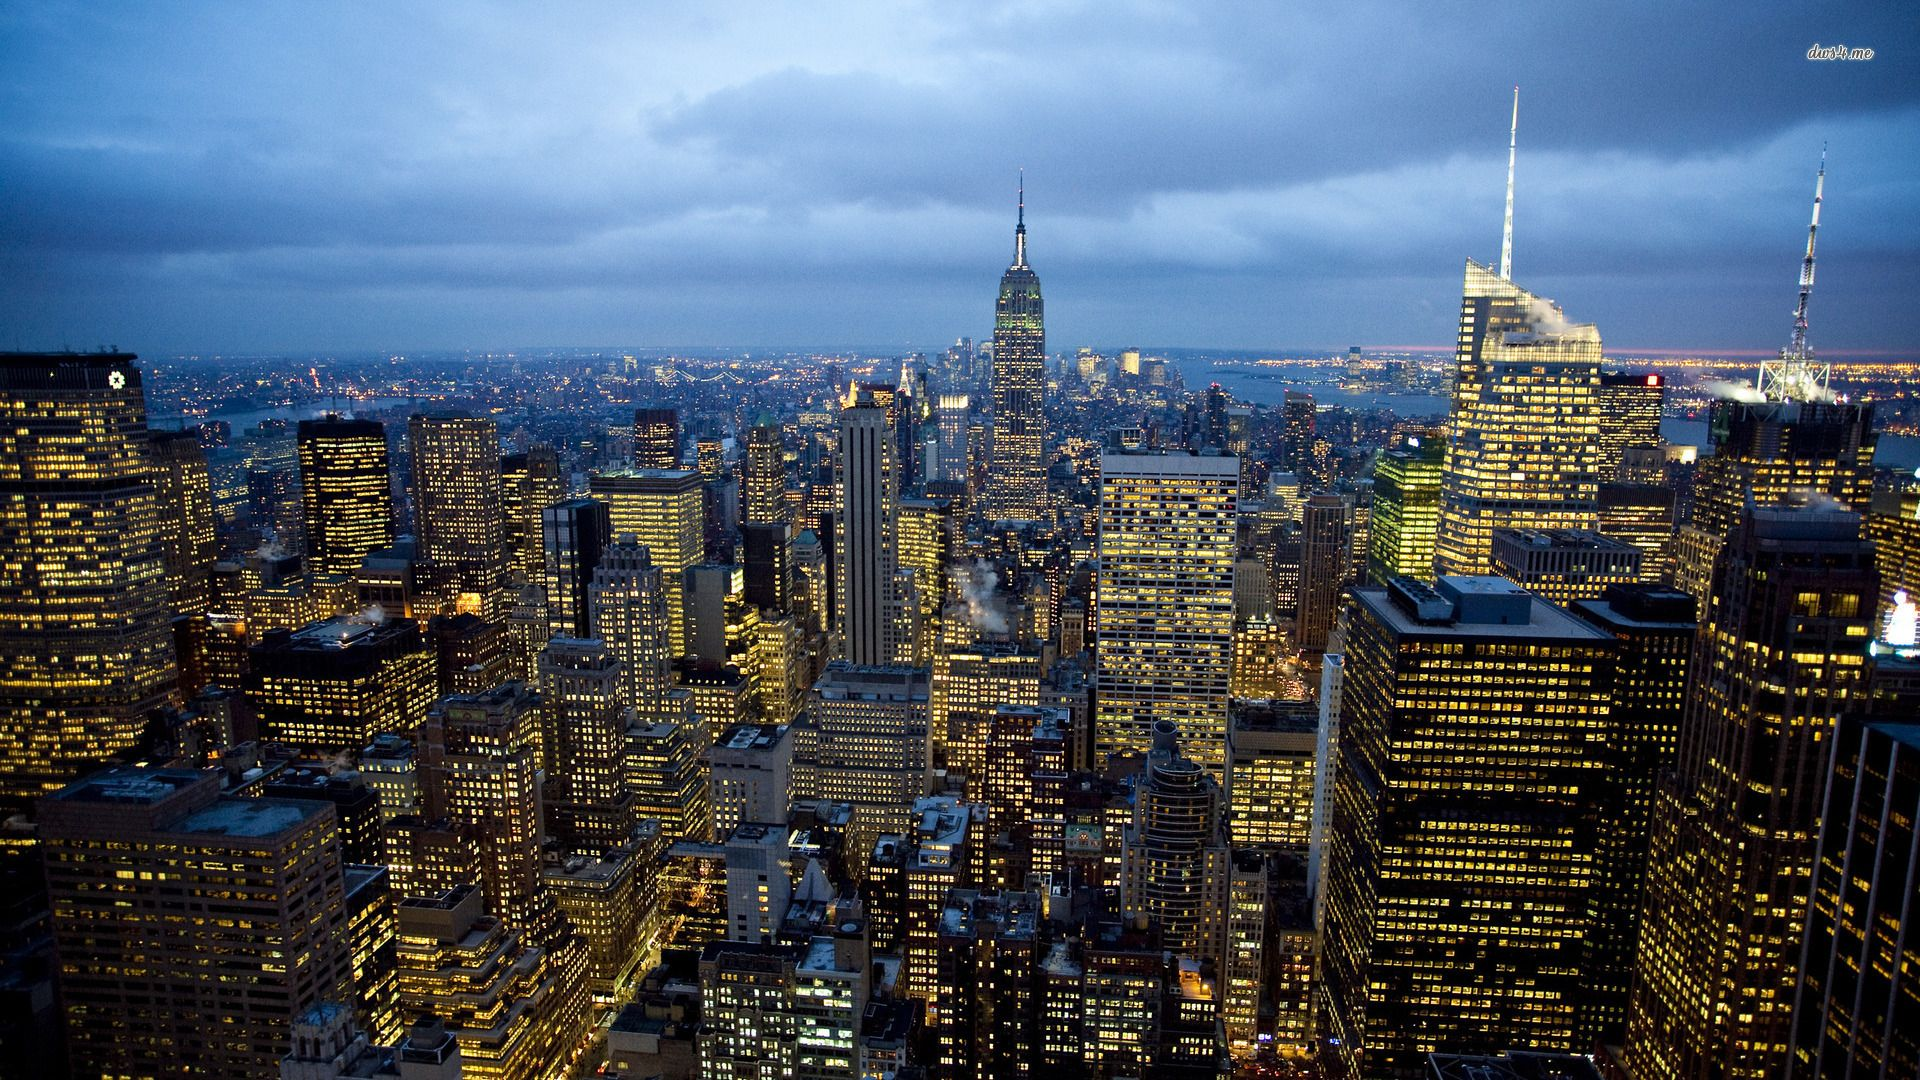 Empire State Building View From Top Wallpaper HD Wallpapers - City lights wallpaper for bedroom